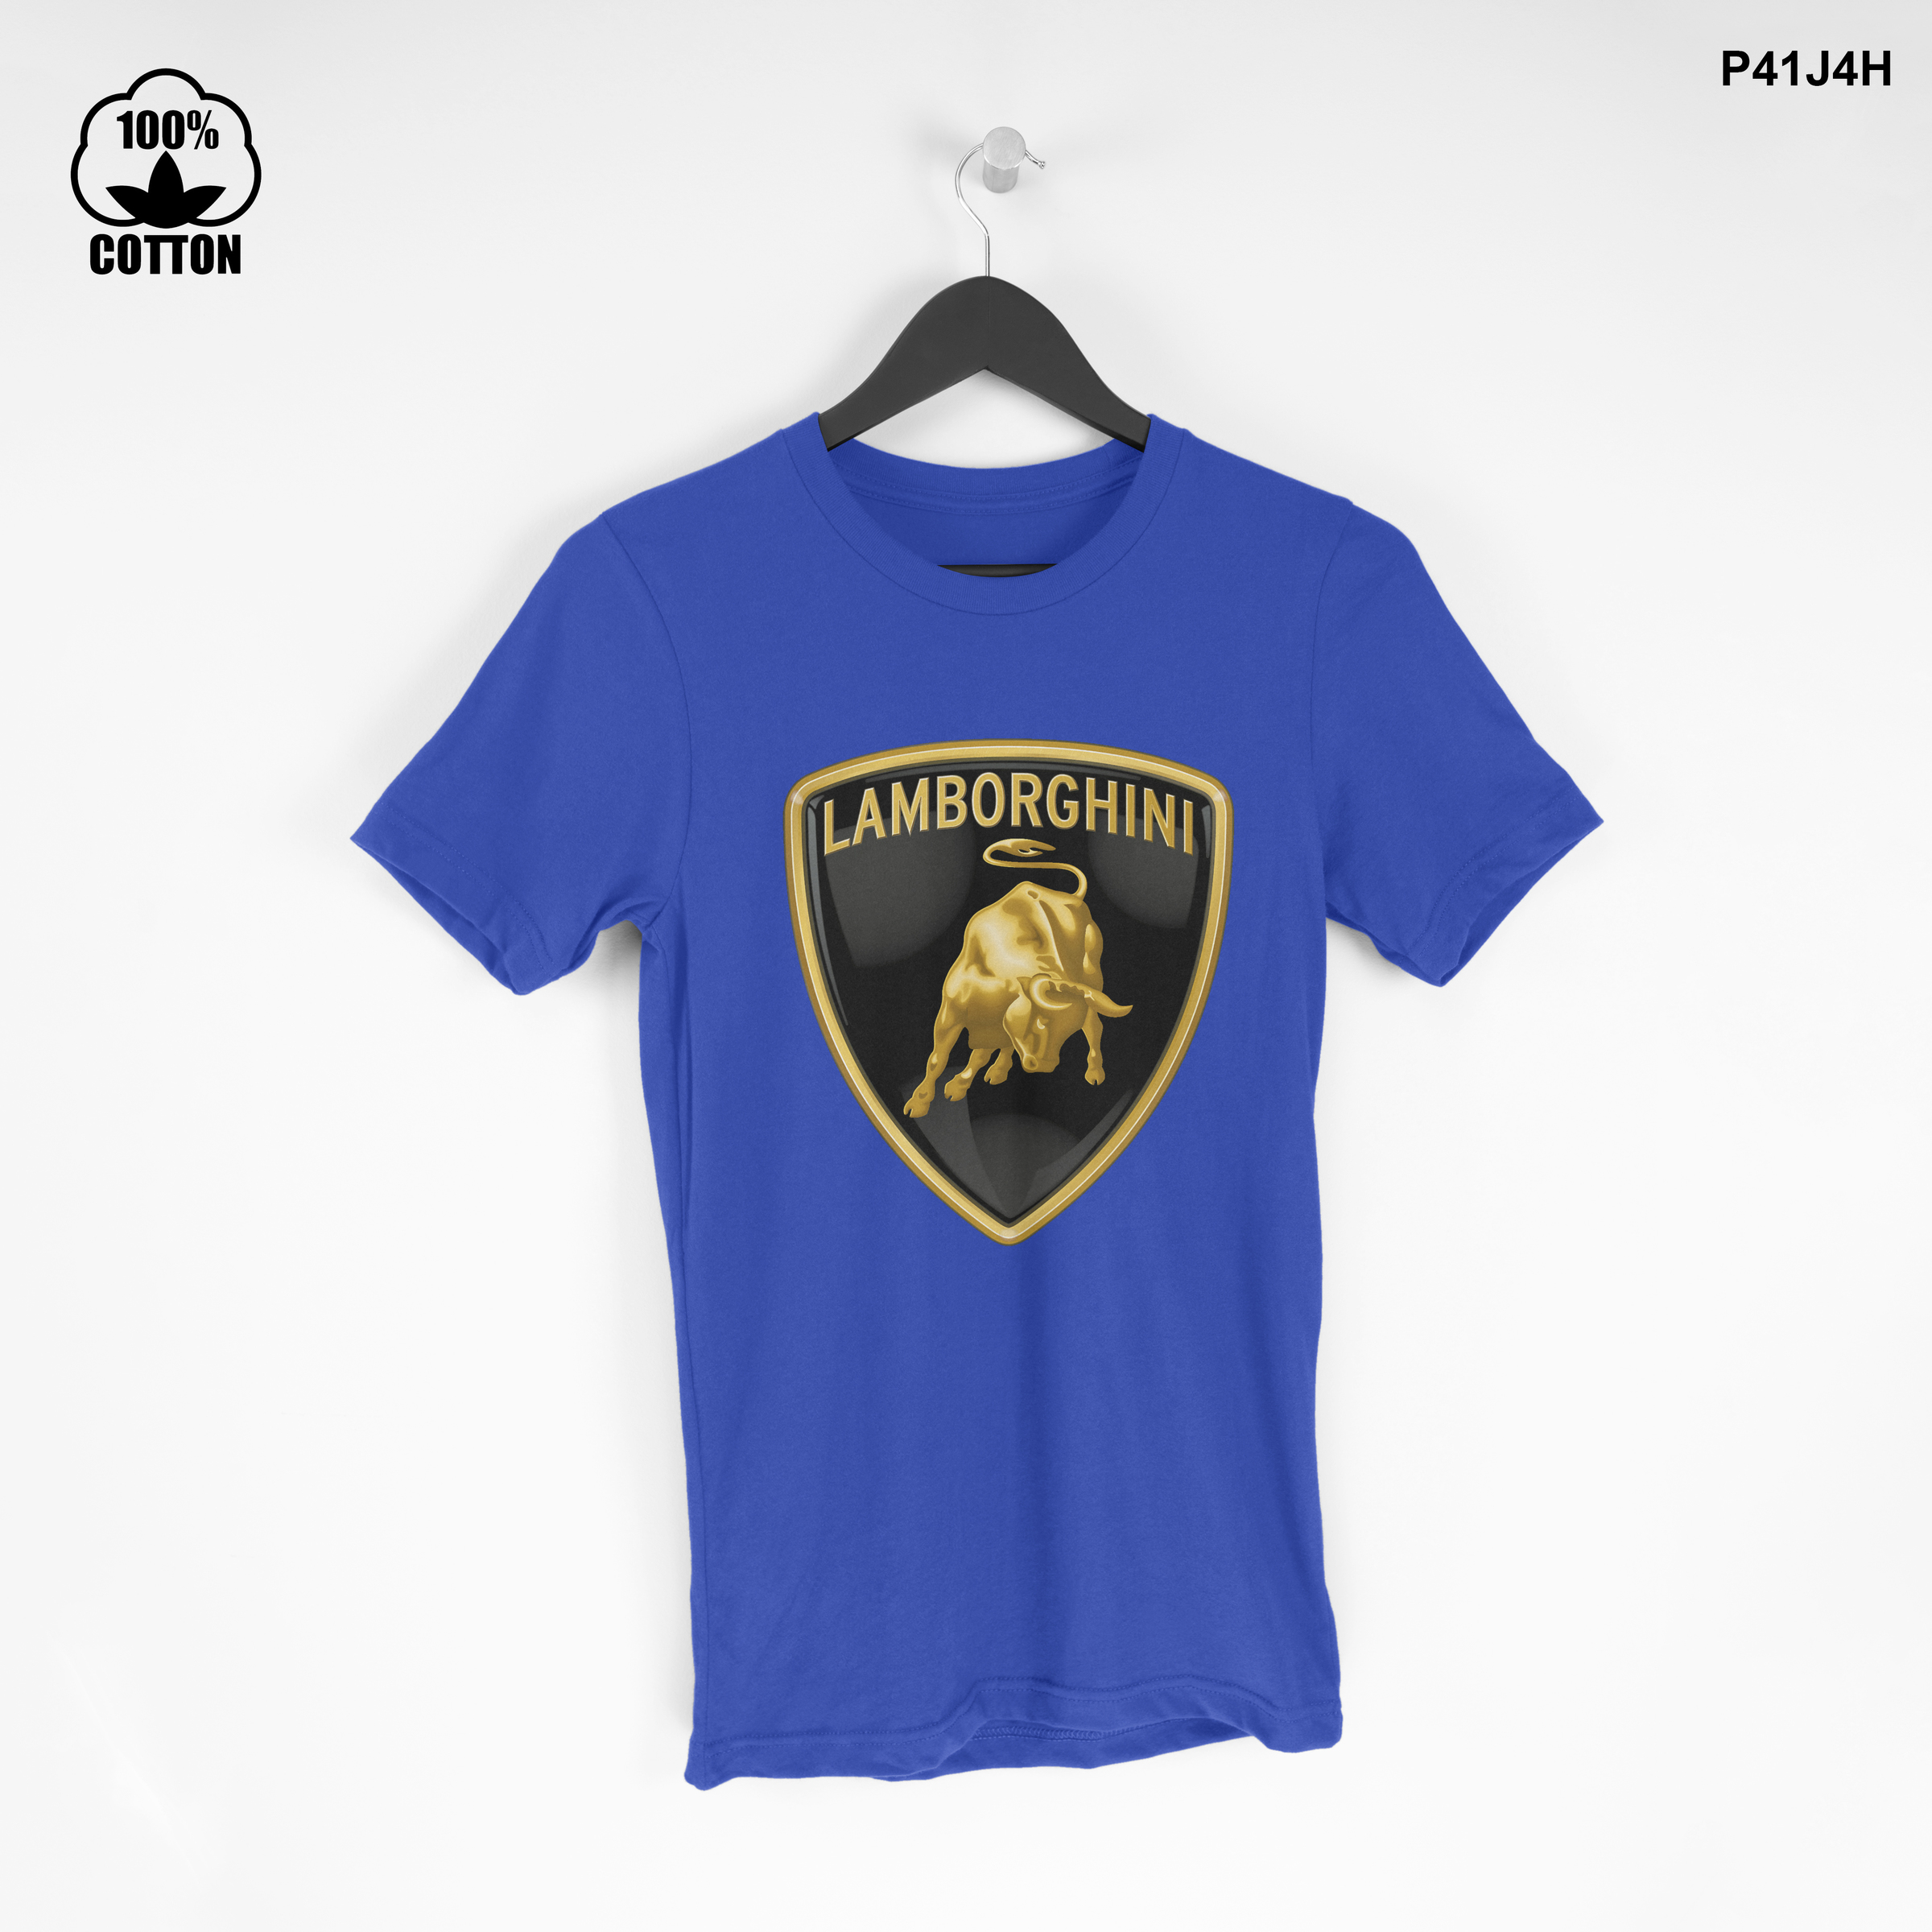 LIMITED EDITION!! Lamborghini-logo T Shirt Tee Dodger Blue.jpg